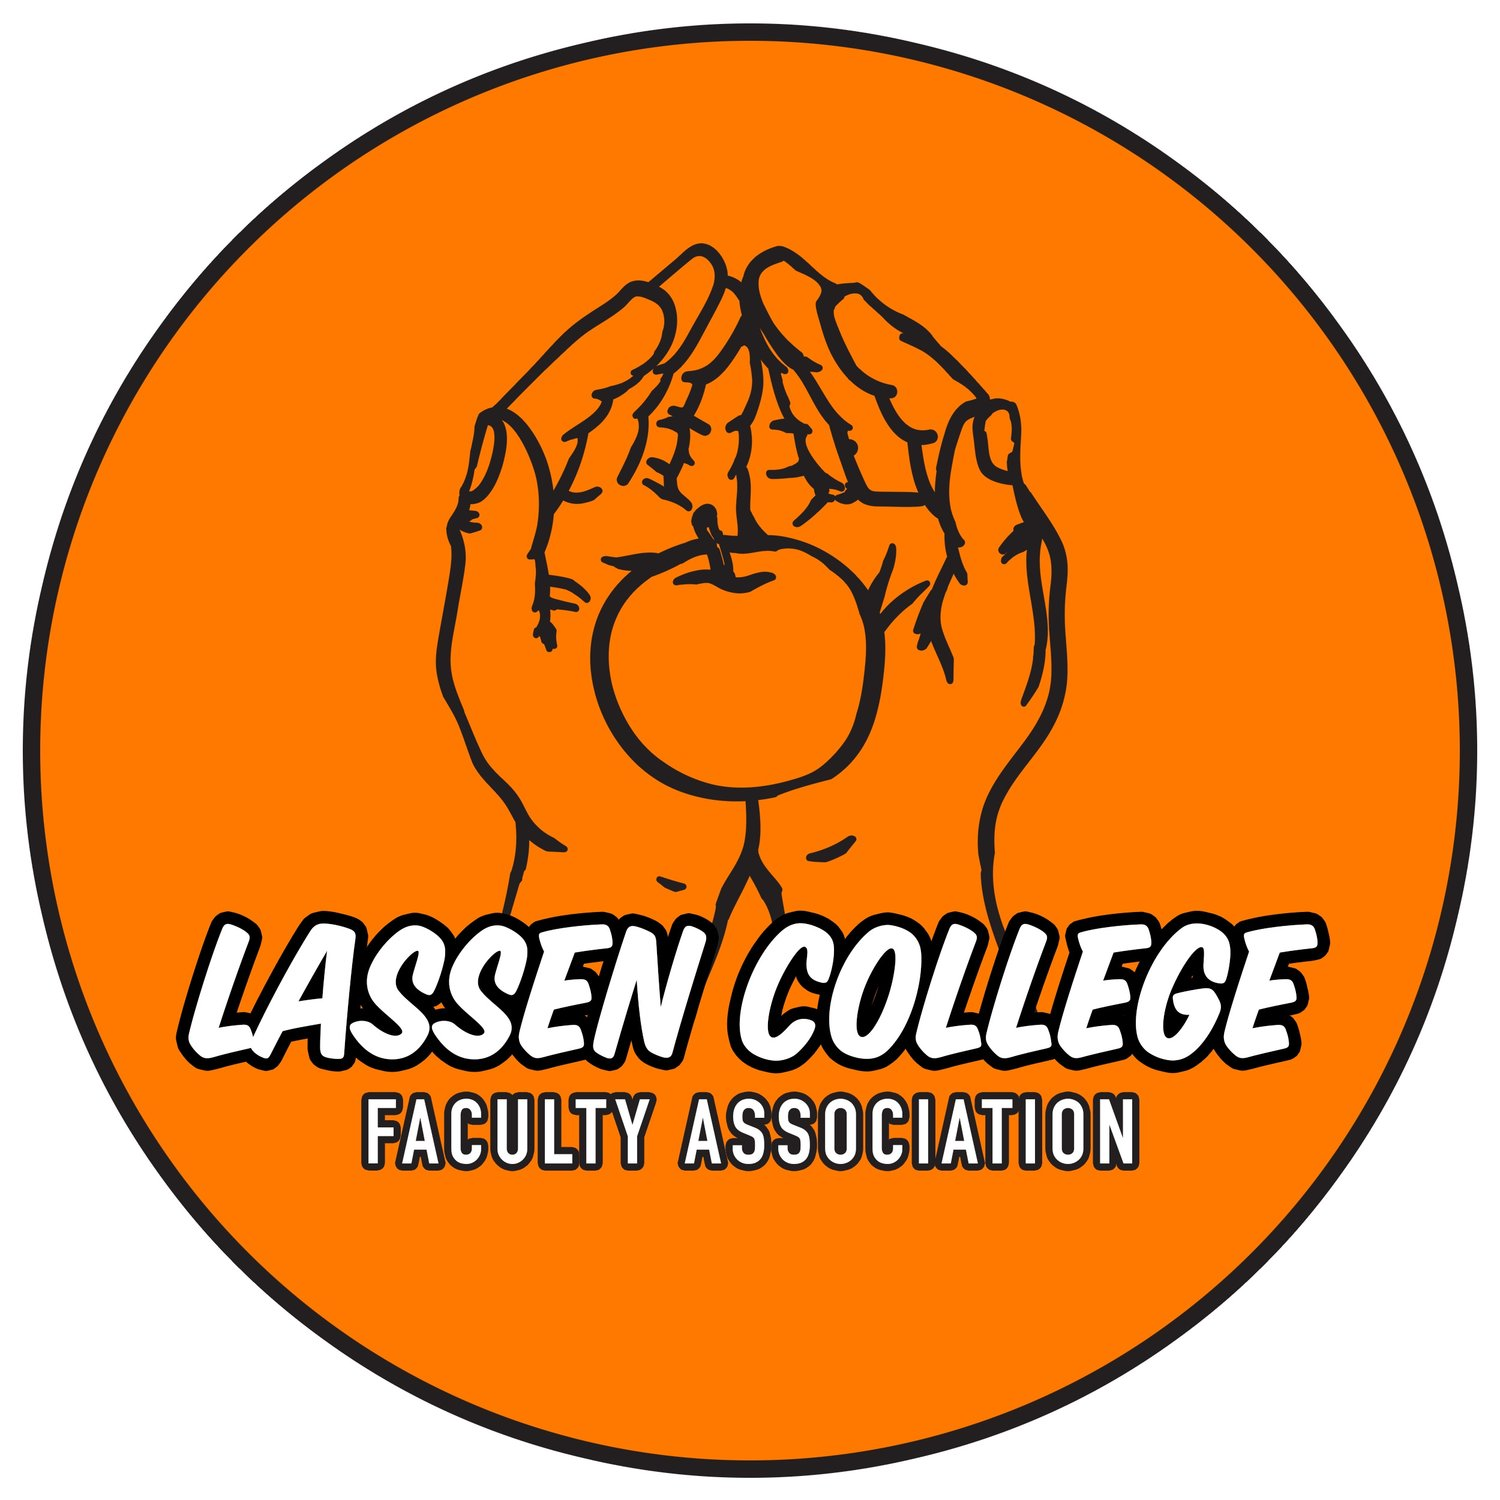 Lassen College Faculty Association